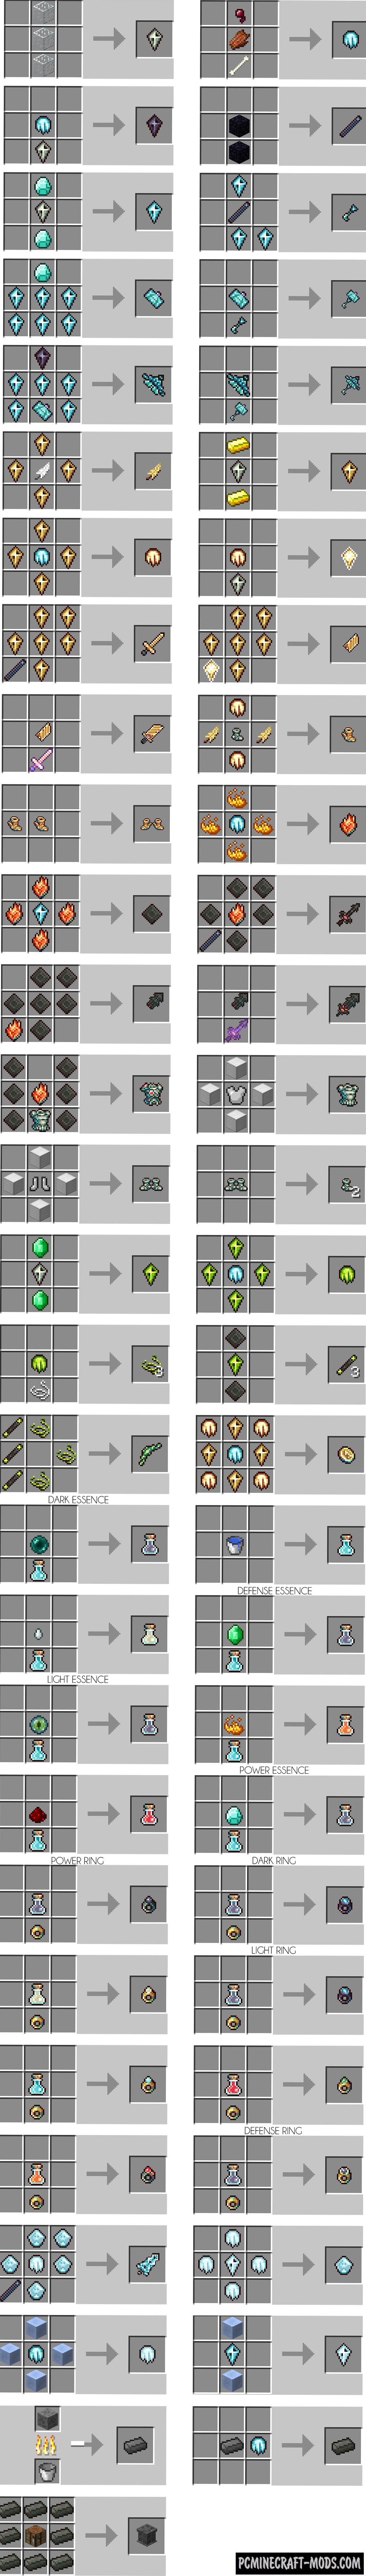 God's Weapons Mod For Minecraft 1.10.2, 1.9.4, 1.7.10